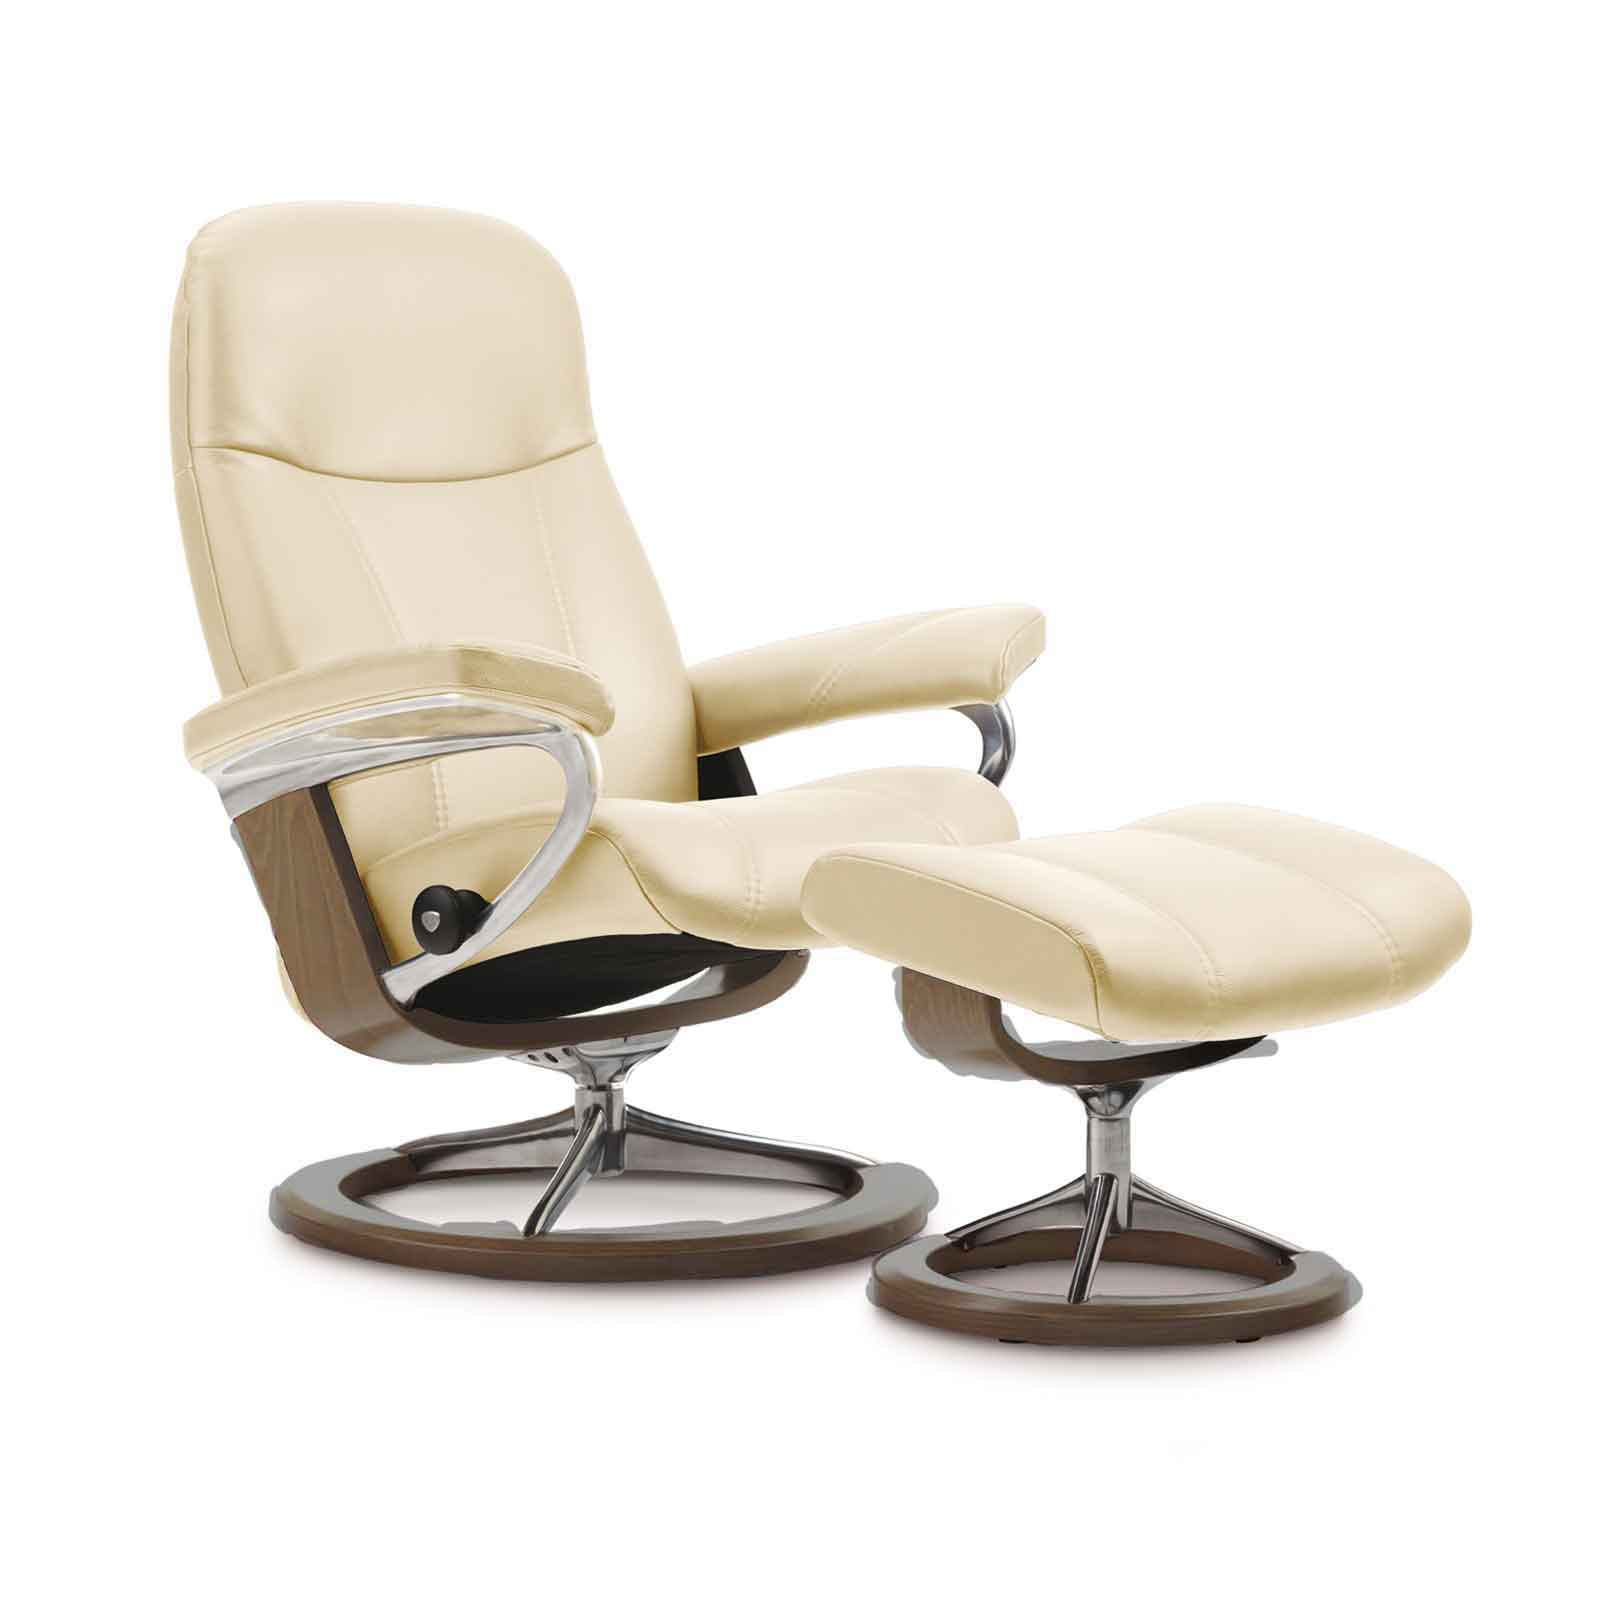 stressless sessel consul l batick cream angebot stressless. Black Bedroom Furniture Sets. Home Design Ideas